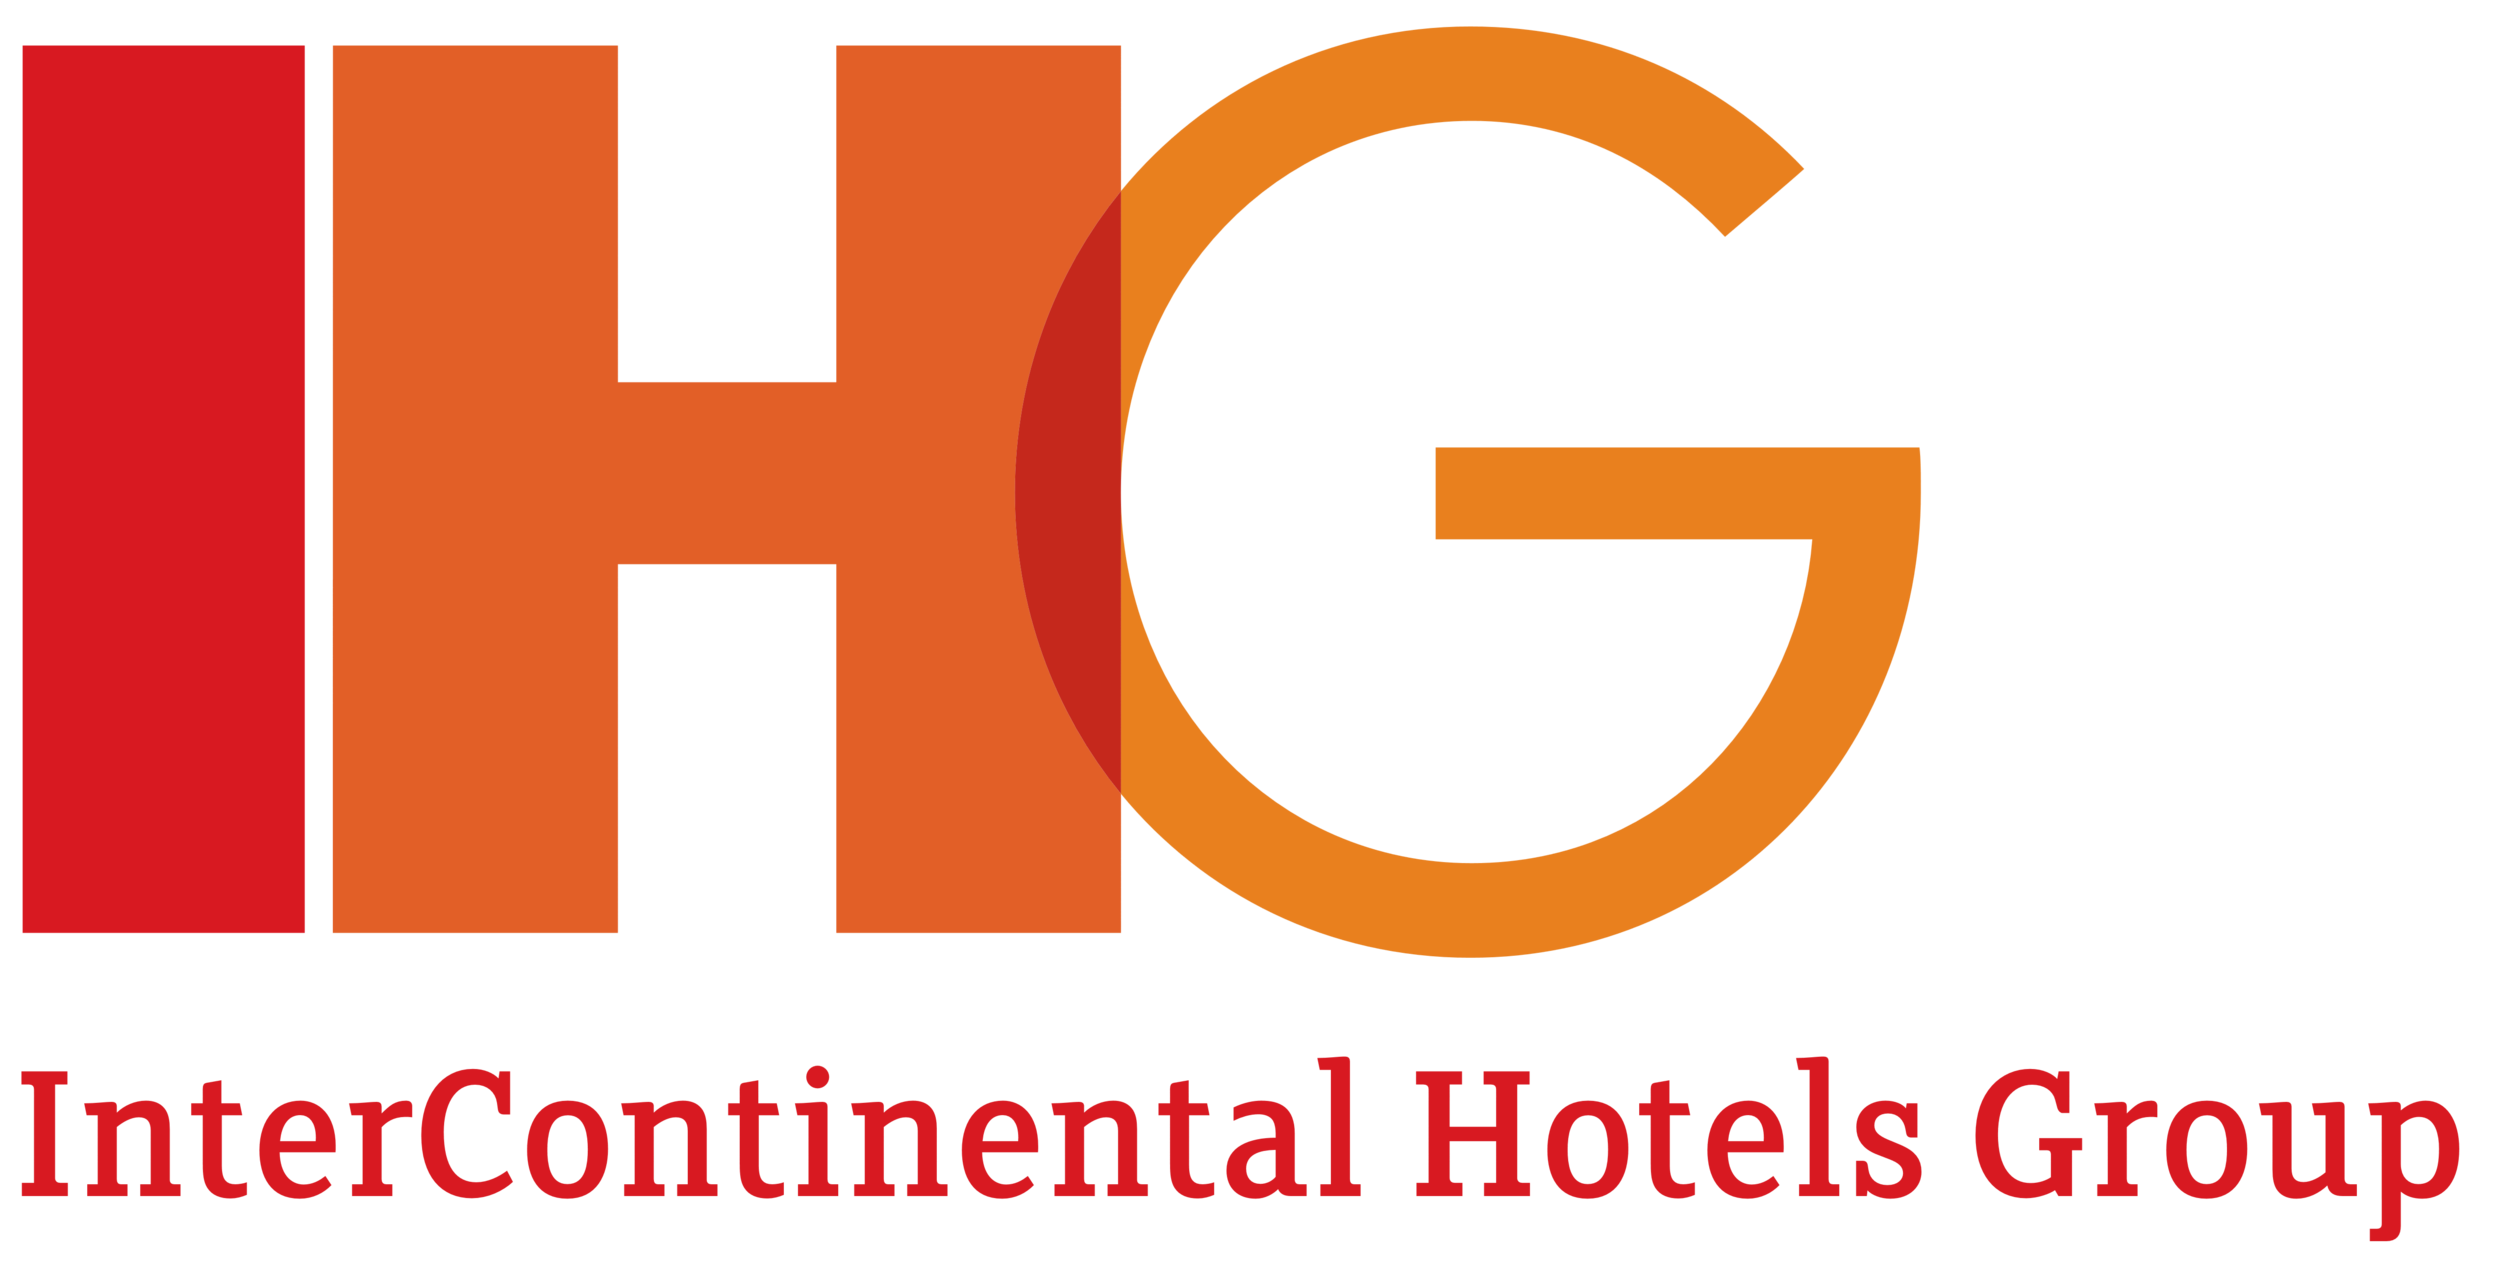 IHG_logo_InterContinental_Hotels_Group.png